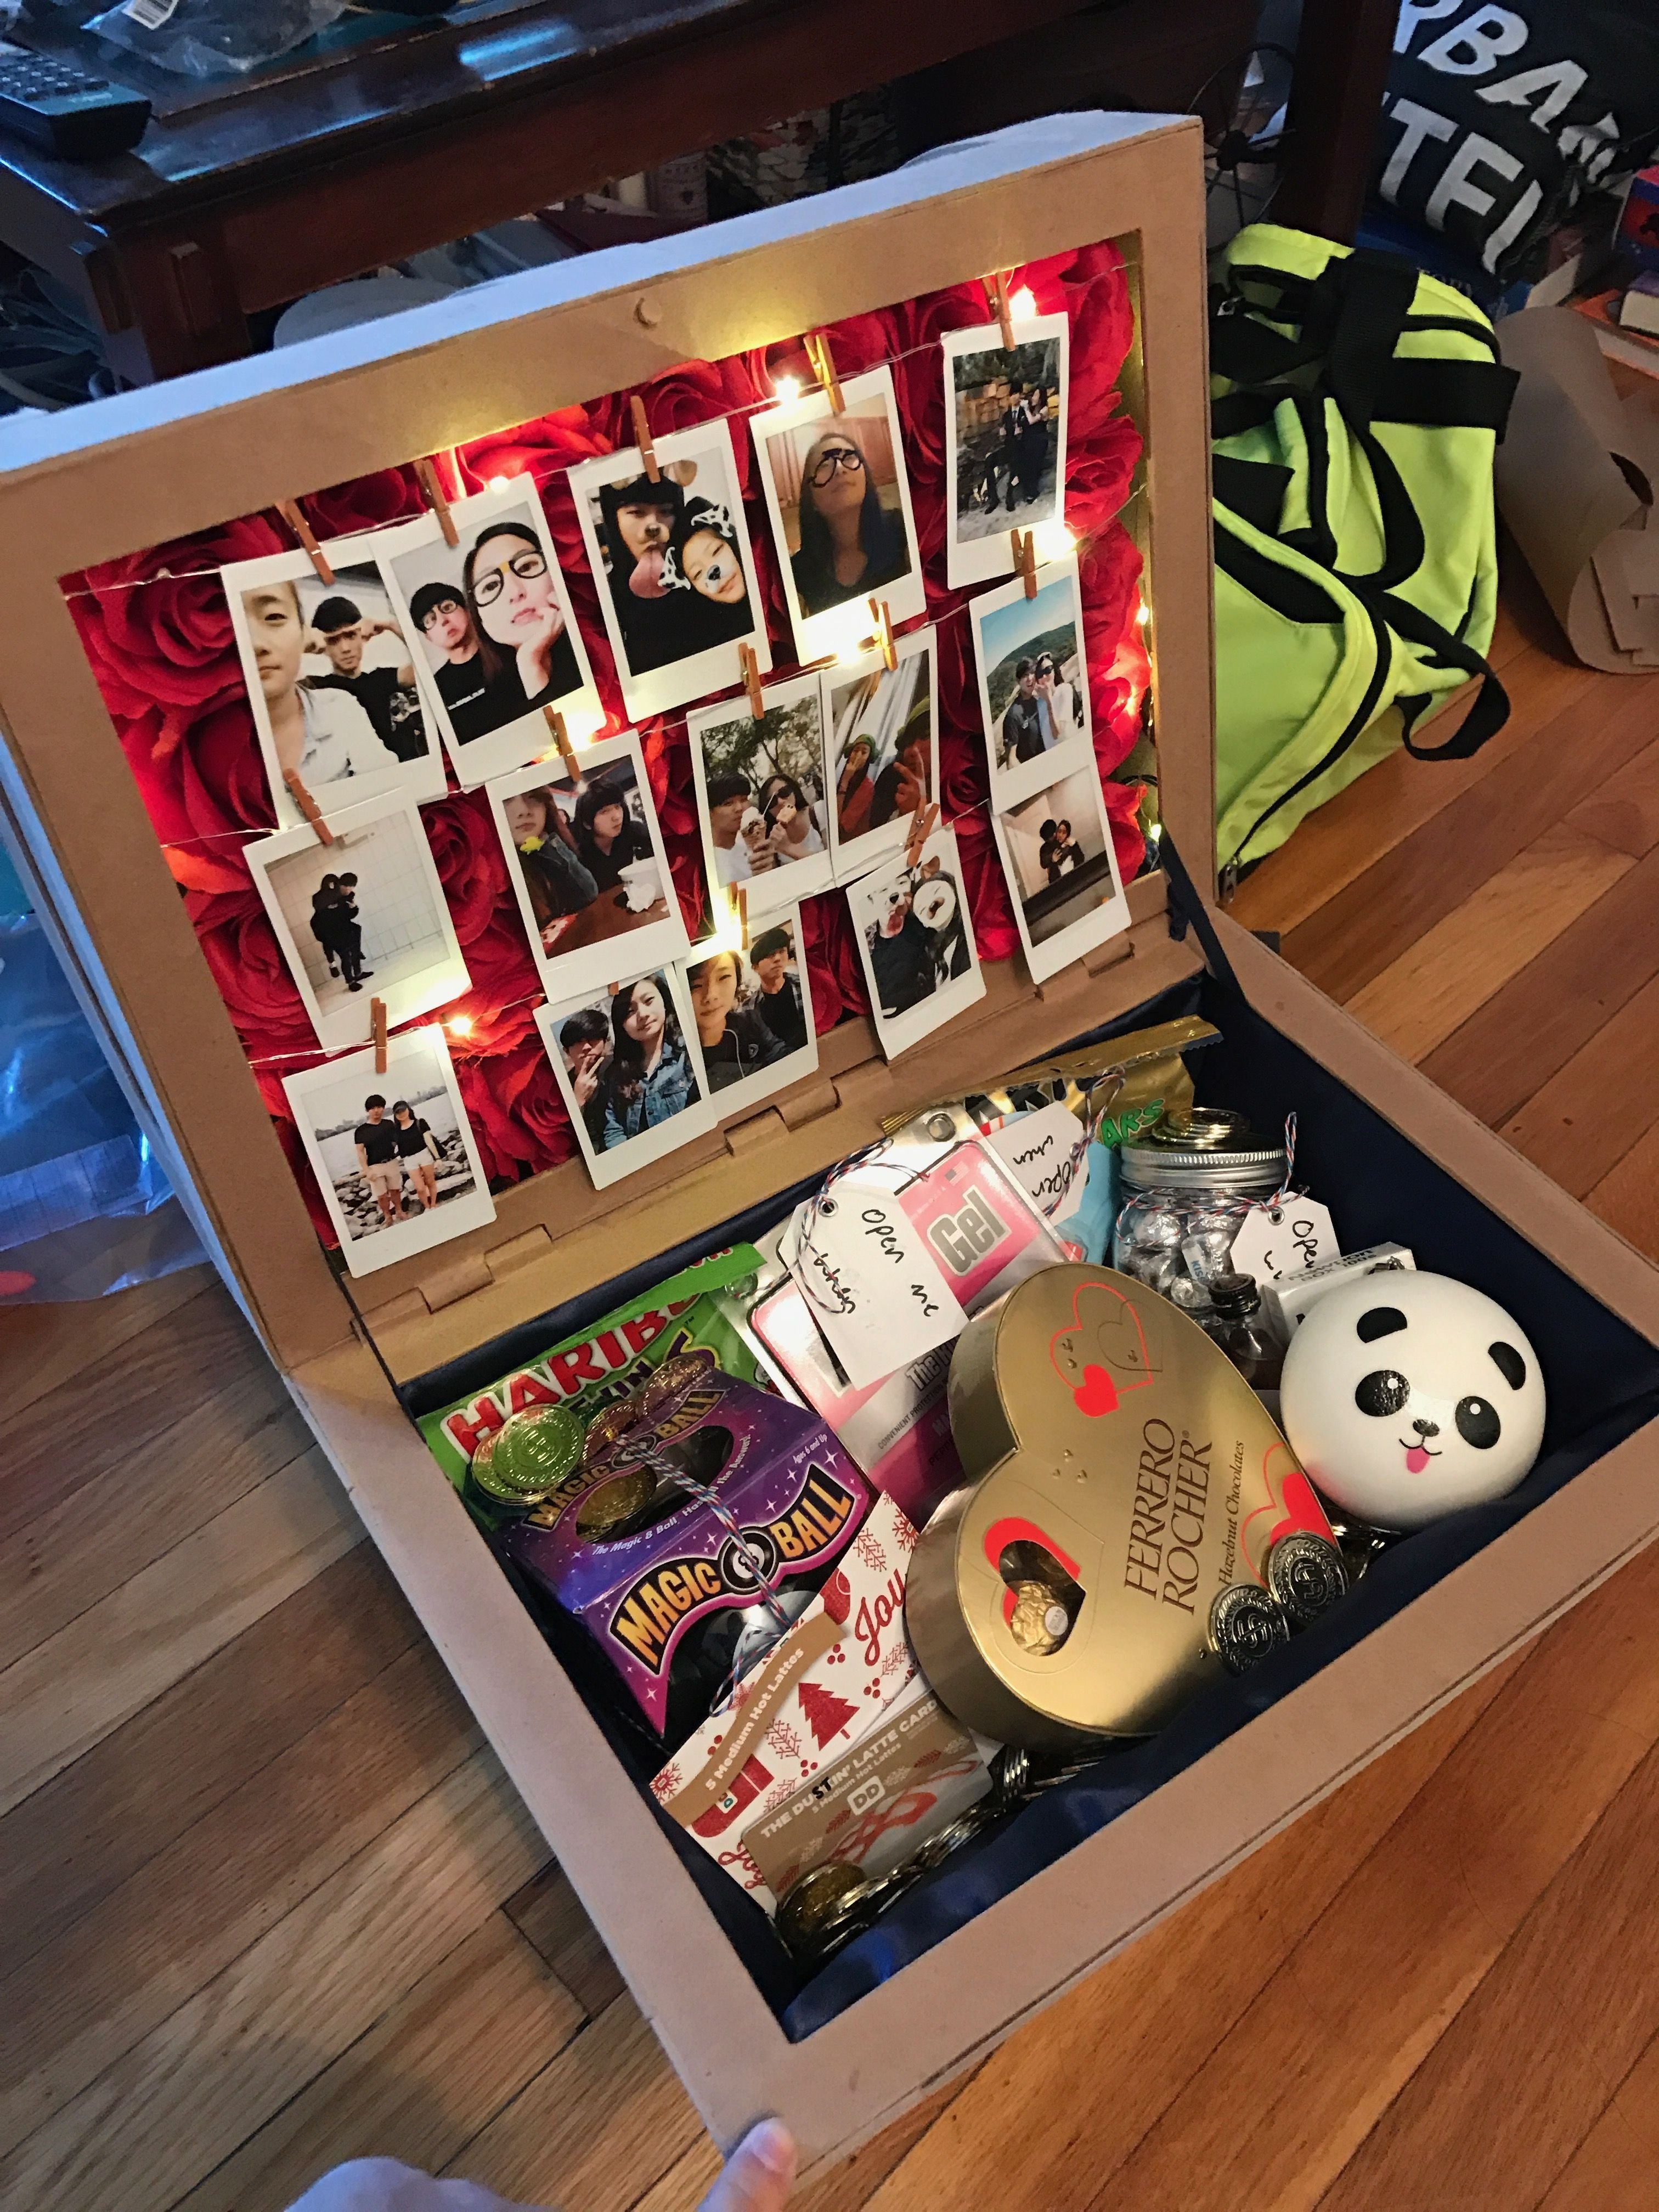 10 Perfect Creative Birthday Ideas For Girlfriend i made a treasure chest out of paper for my girlfriend 3 2021